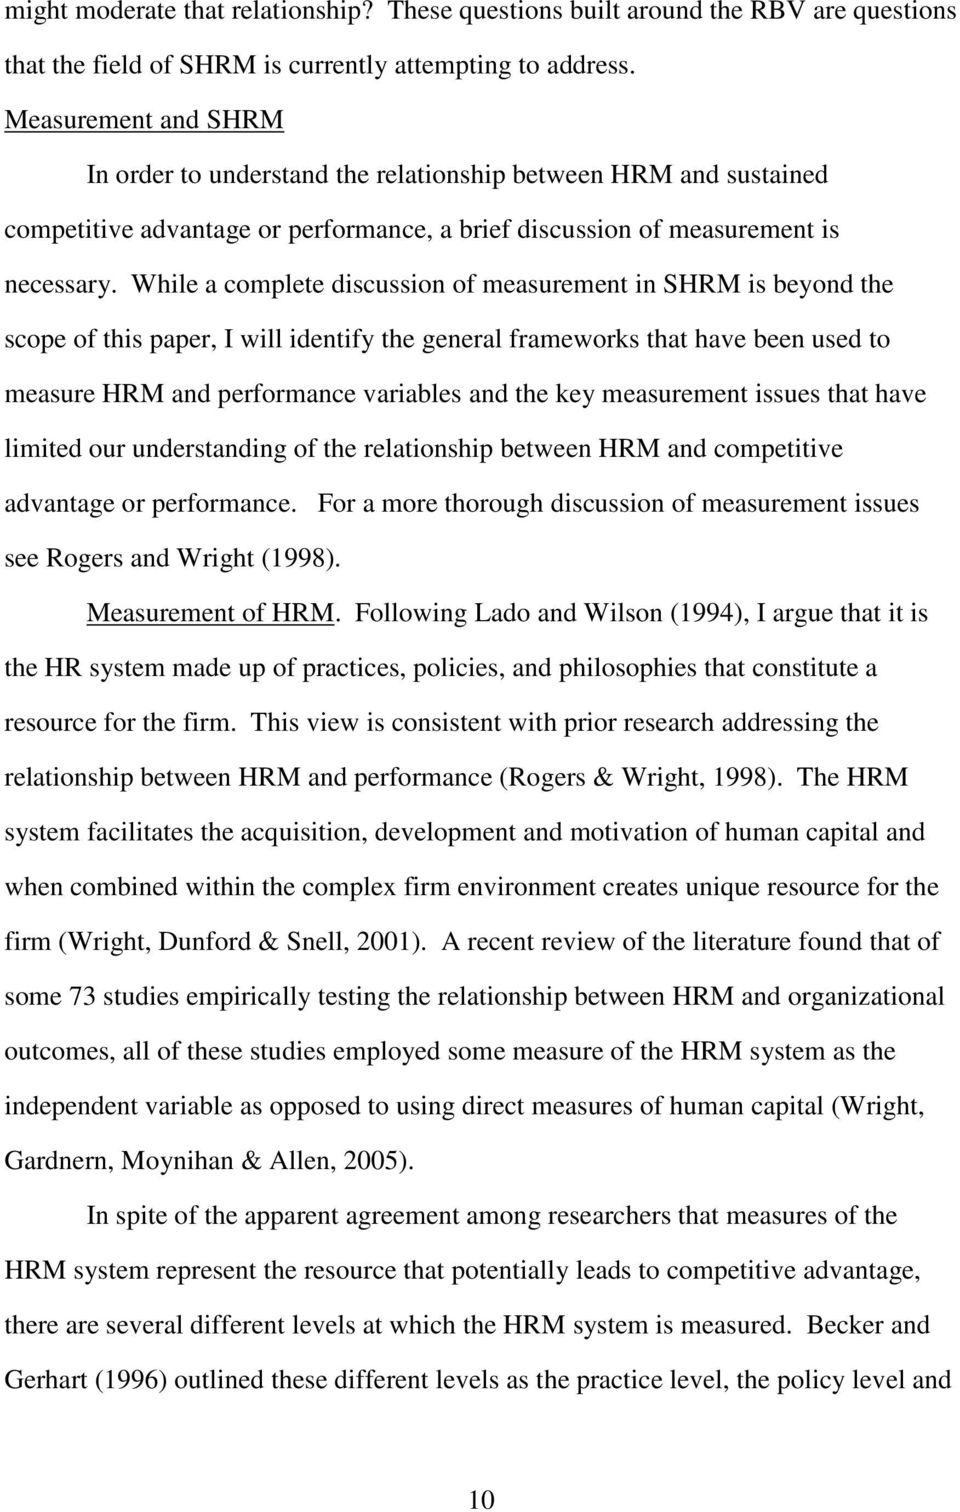 While a complete discussion of measurement in SHRM is beyond the scope of this paper, I will identify the general frameworks that have been used to measure HRM and performance variables and the key